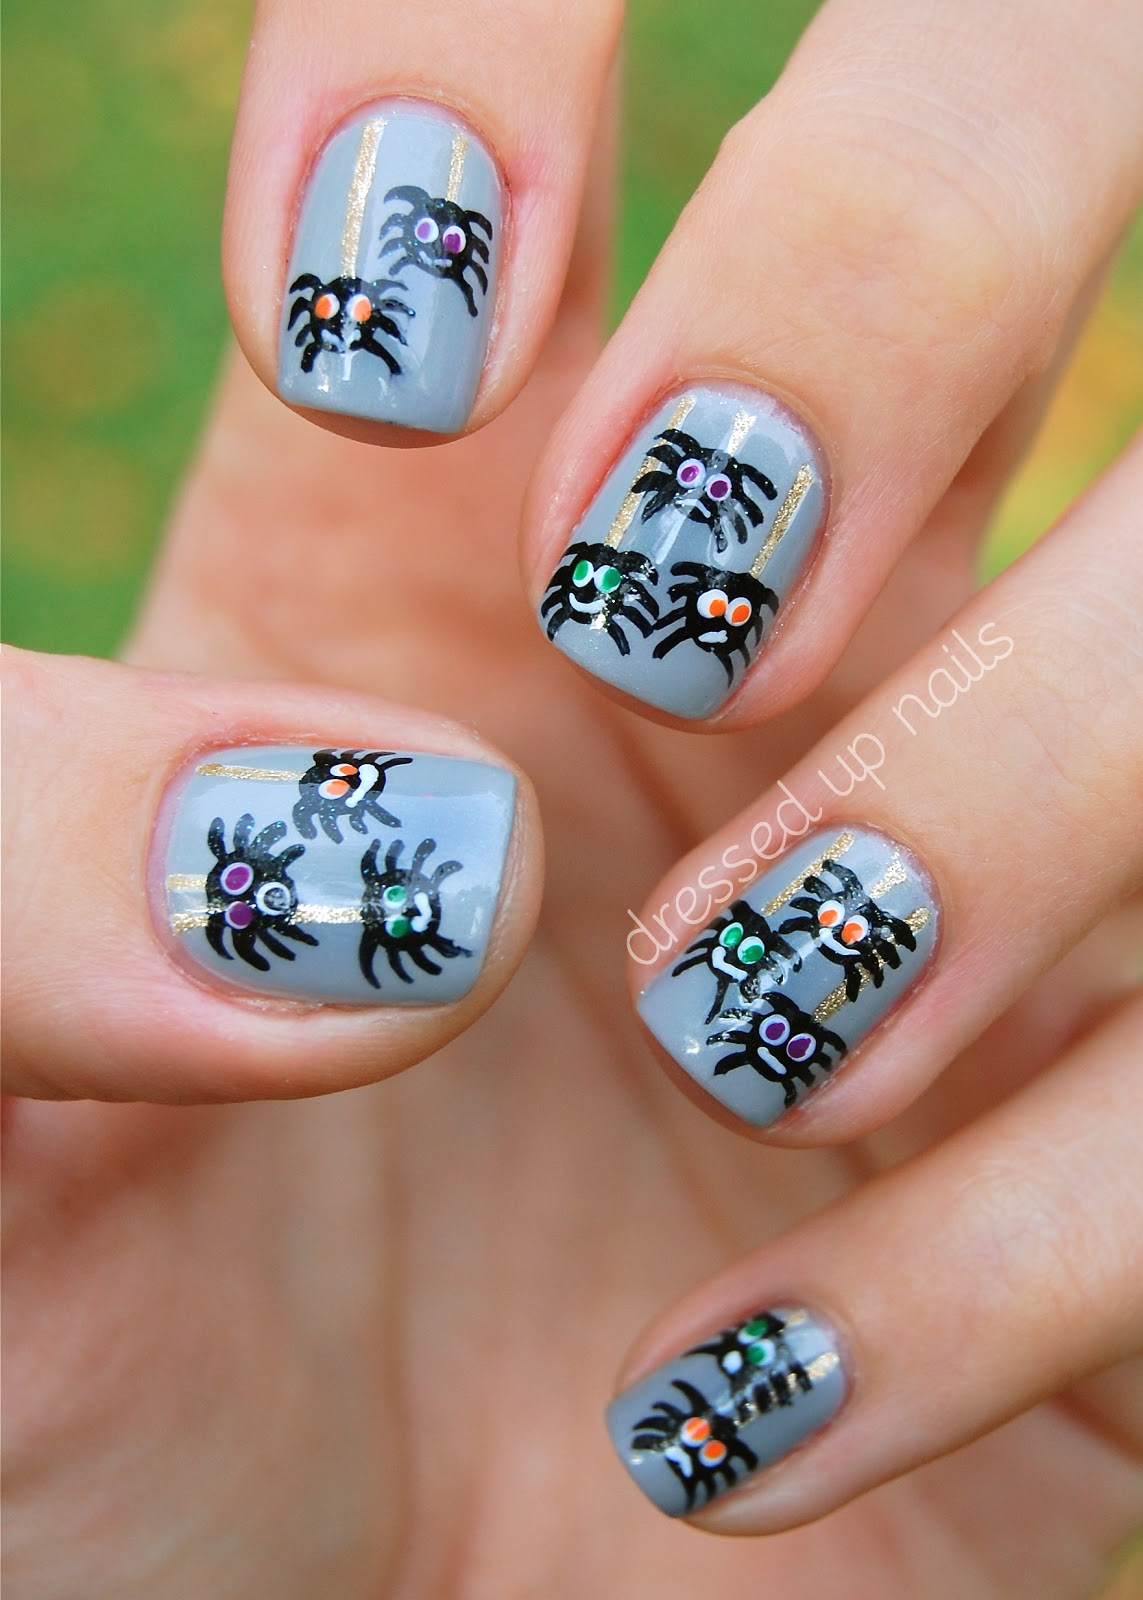 Nail Art Halloween Spiders Nail Arts